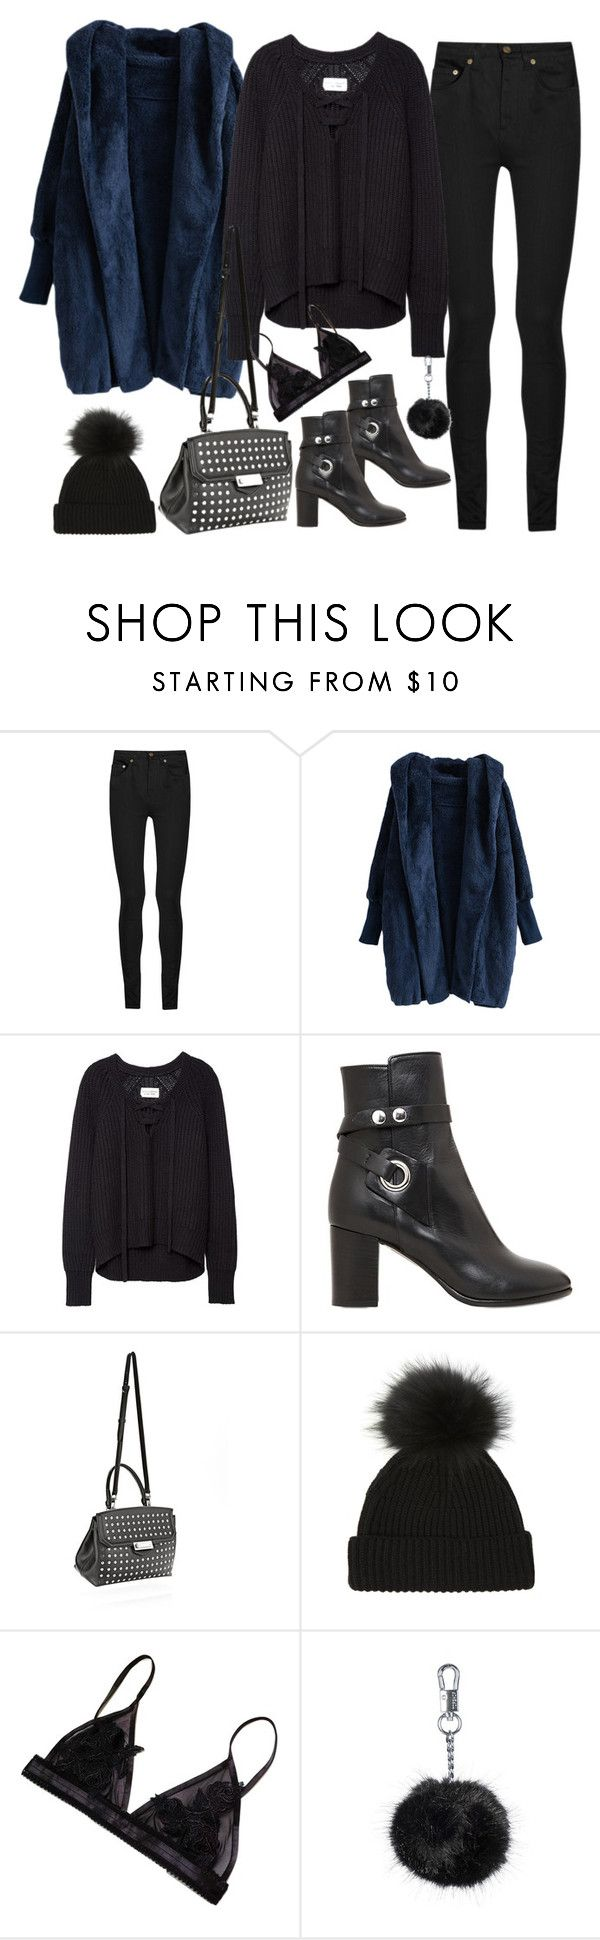 """""""Untitled#4015"""" by fashionnfacts ❤ liked on Polyvore featuring mode, Yves Saint Laurent, Isabel Marant, Alexander Wang, Topshop, women's clothing, women's fashion, women, female en woman"""